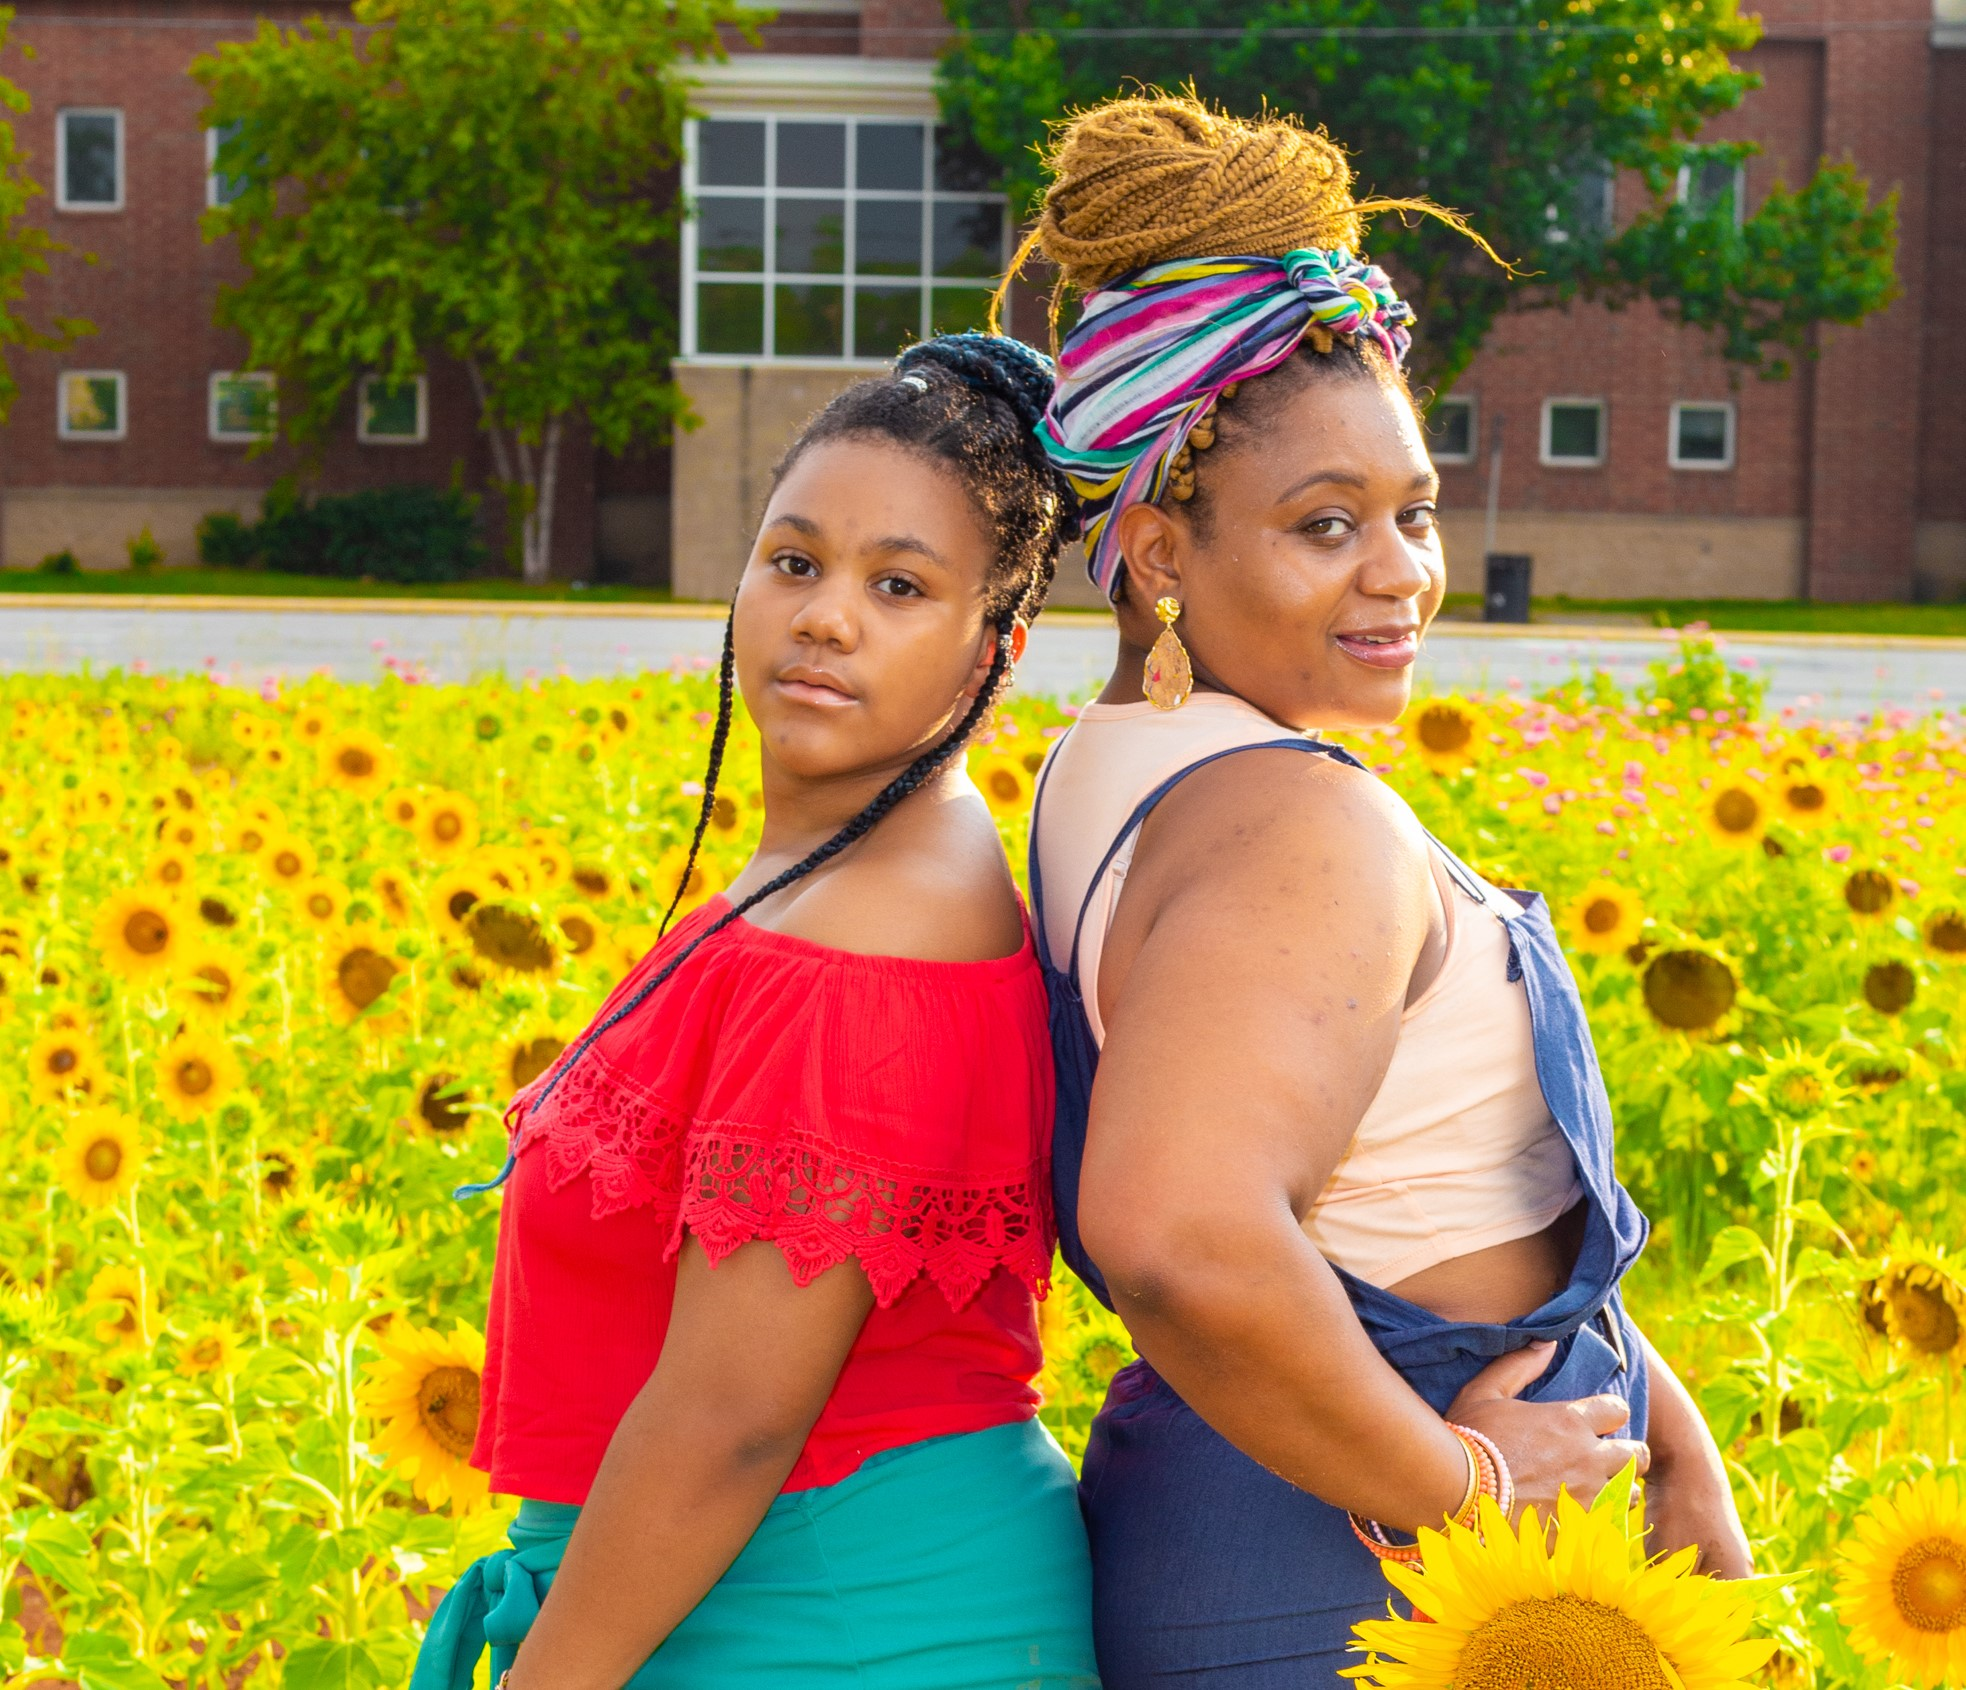 Kayla Mallet and her daughter, Rissy in a field of sunflowers